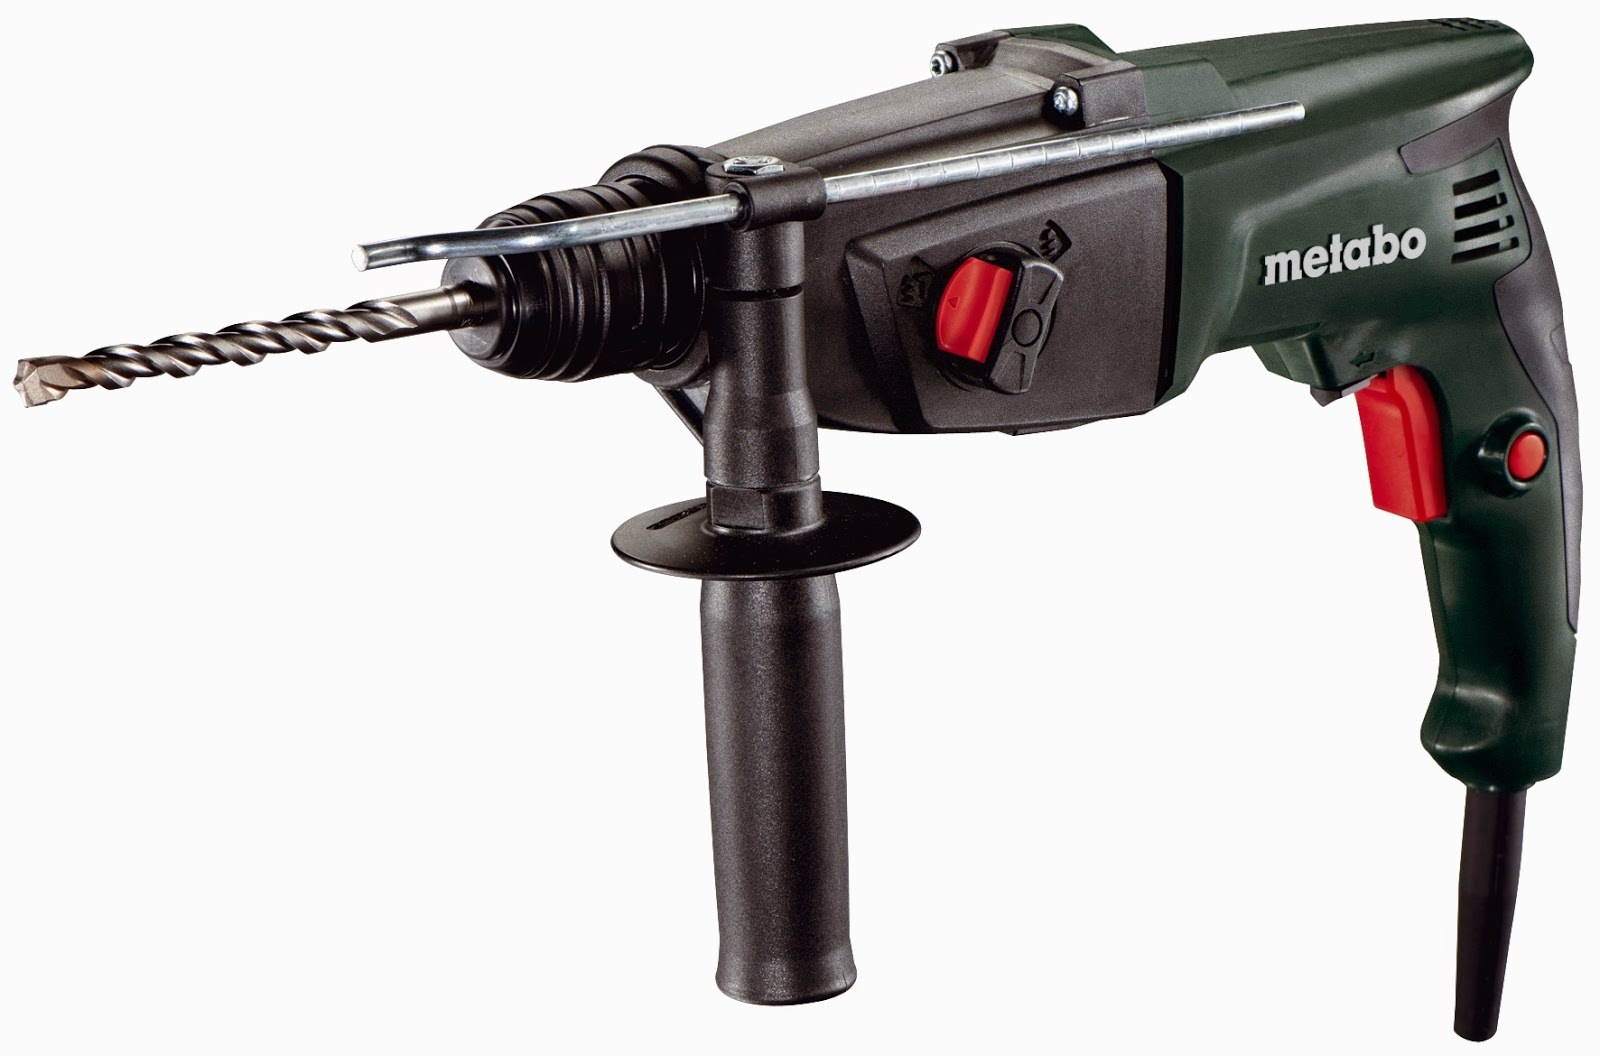 metabo 24mm rotary hammer 760w bhe2442 corded drills. Black Bedroom Furniture Sets. Home Design Ideas